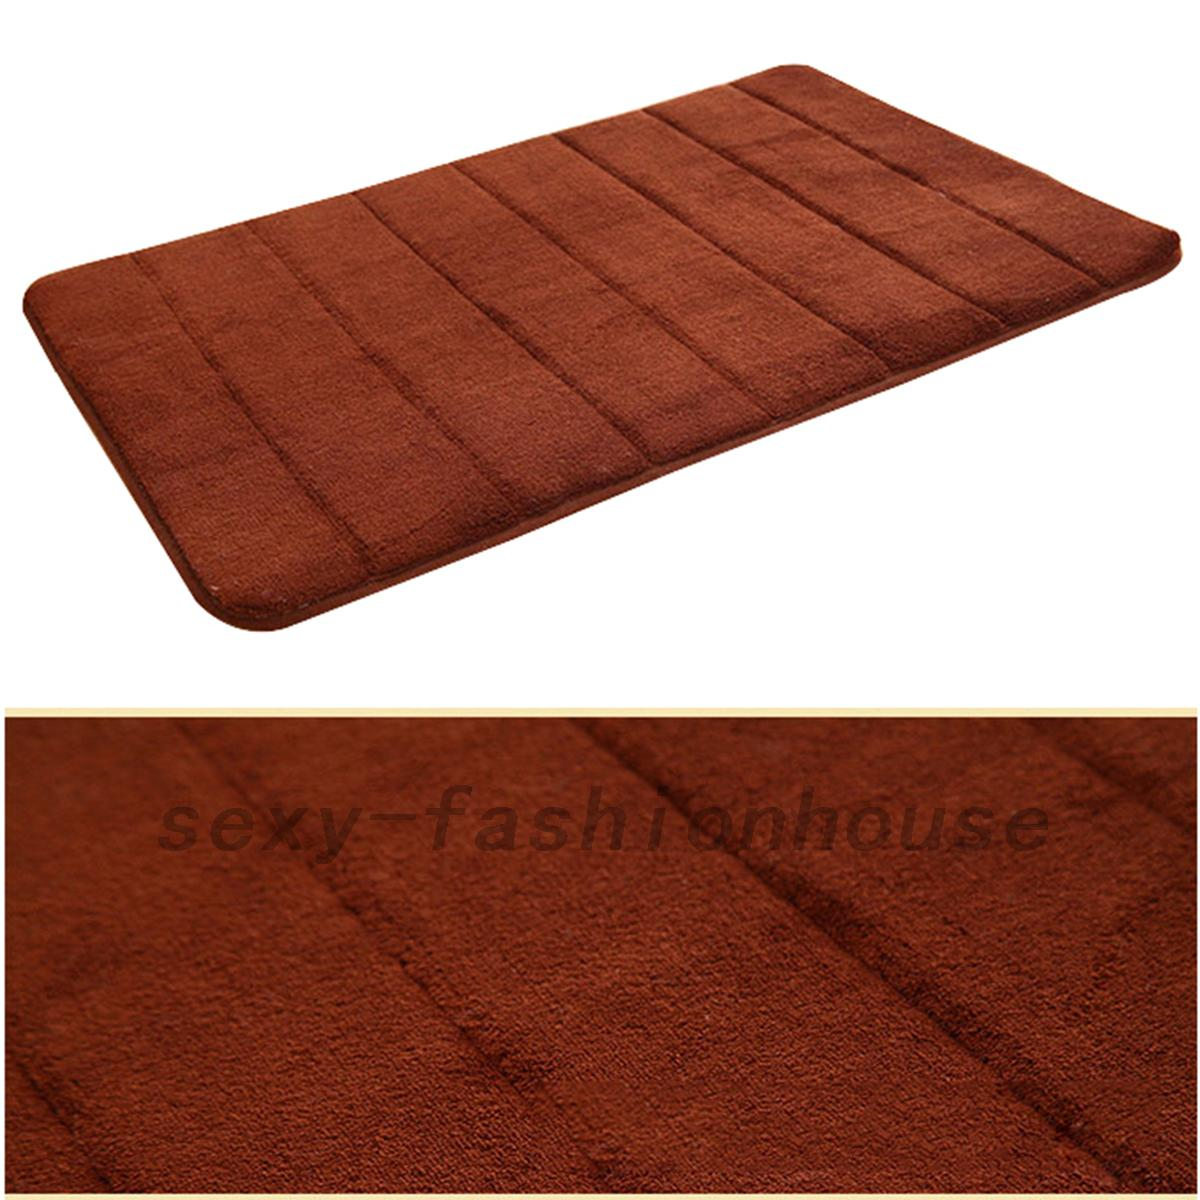 Memory Foam Non-slip Floor Mats Bath Shower Carpet ...